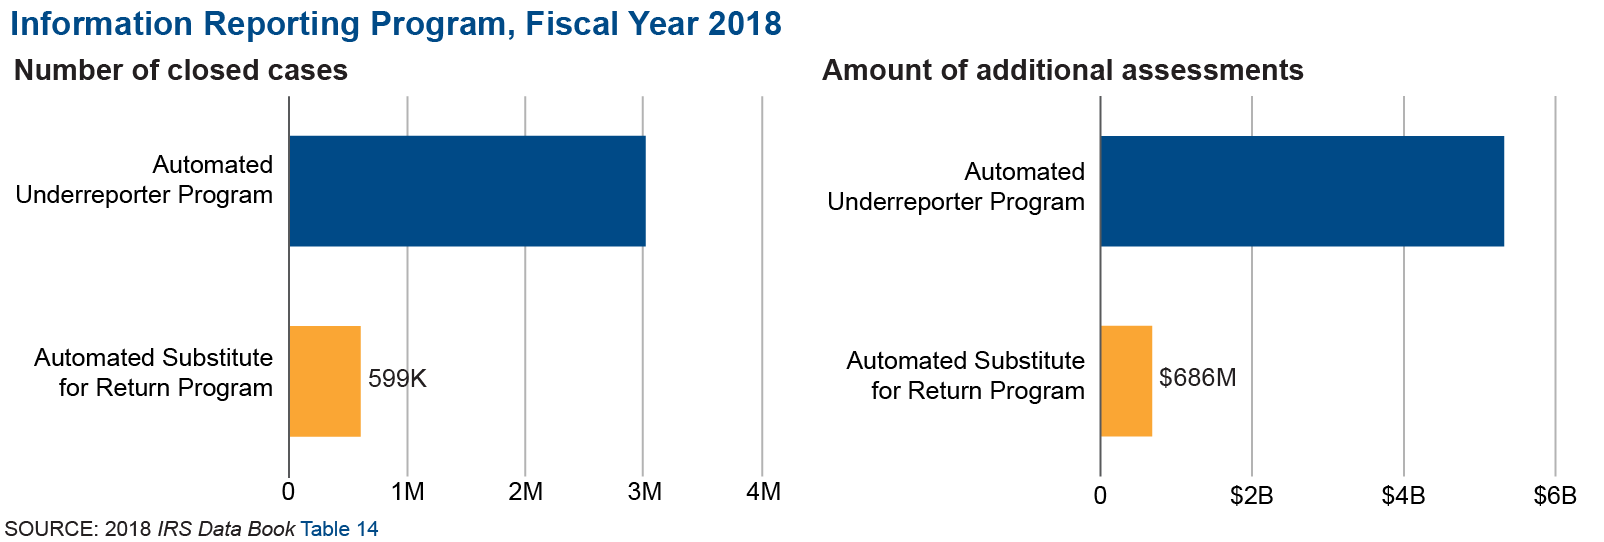 Two charts that show data regarding the IRS Information Reporting Programs, the Automated Substitute for Return Program and the Automated Underreporter Program for fiscal year 2018. The graphs show that the IRS closed more than 3.0 million cases under the Automated Underreporter Program resulting in more than $5.3 billion in additional assessments. It closed 599,000 cases under its Automated Substitute for Return Program, resulting in $685.7 million in additional assessments.